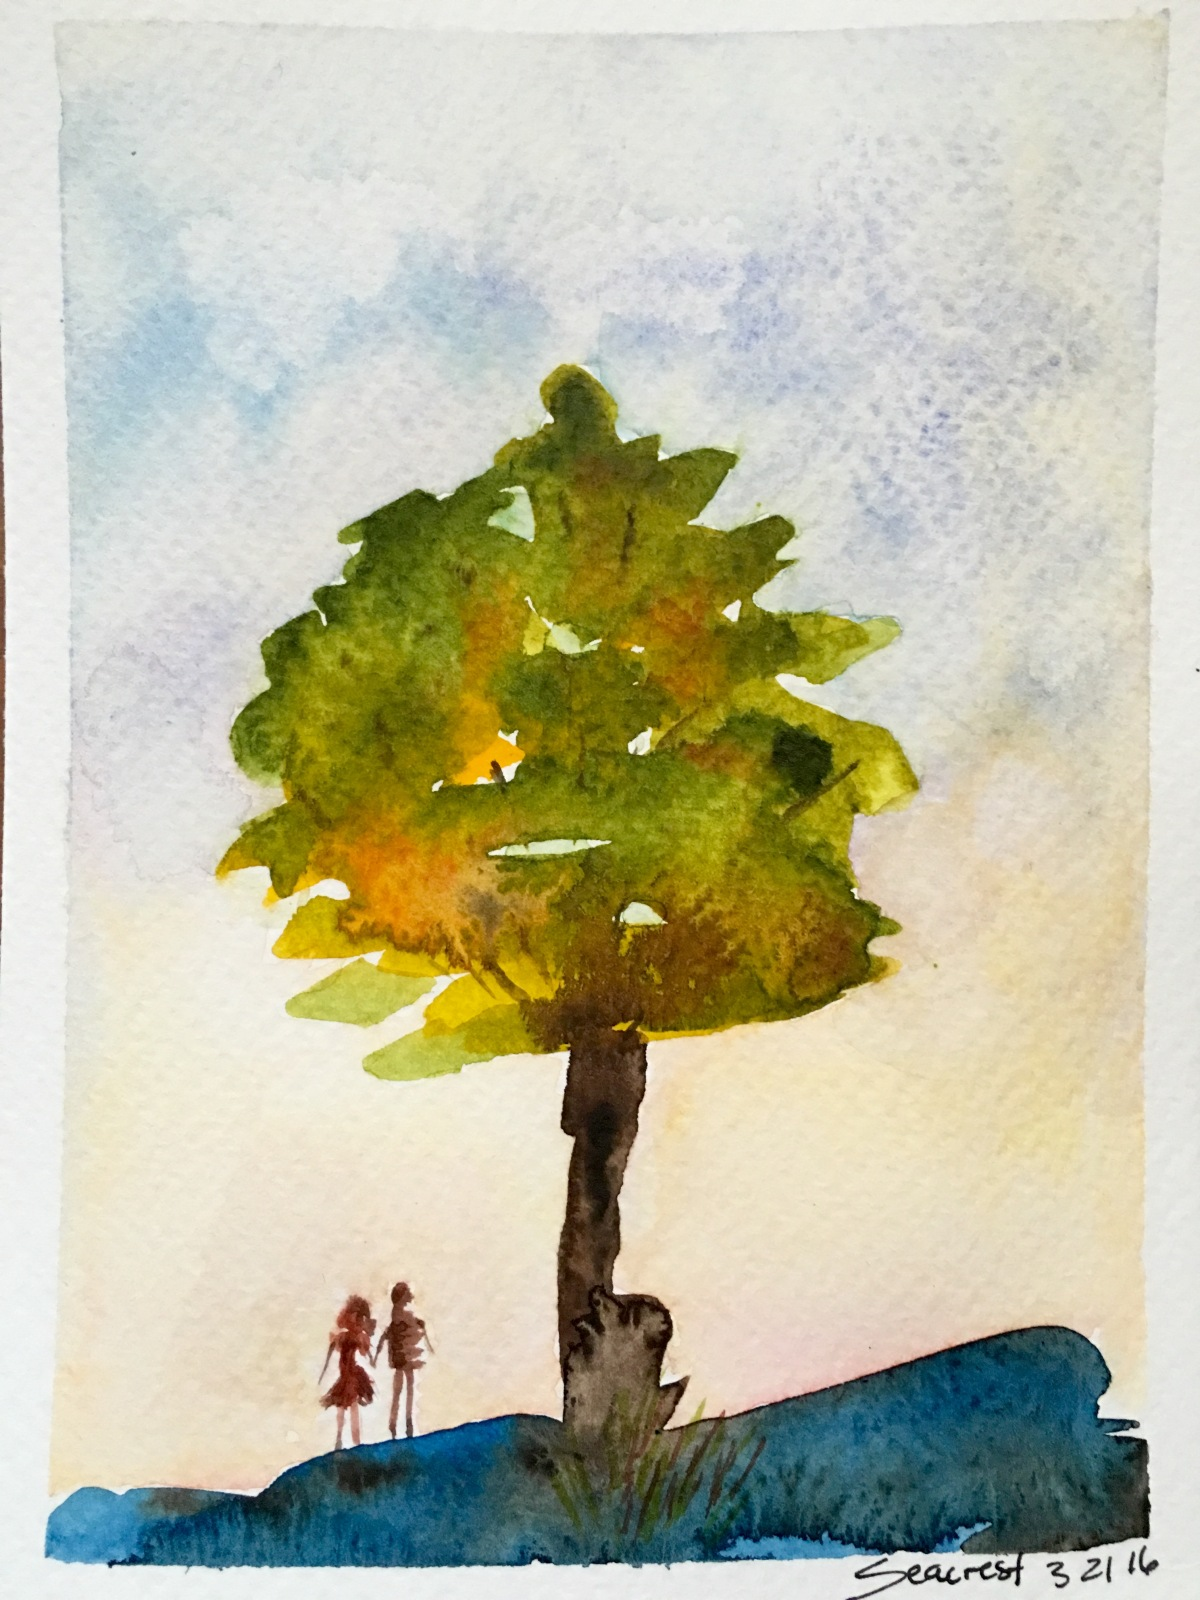 Tree and figures on hill painted with Mission Gold watercolors by Jessica Seacrest